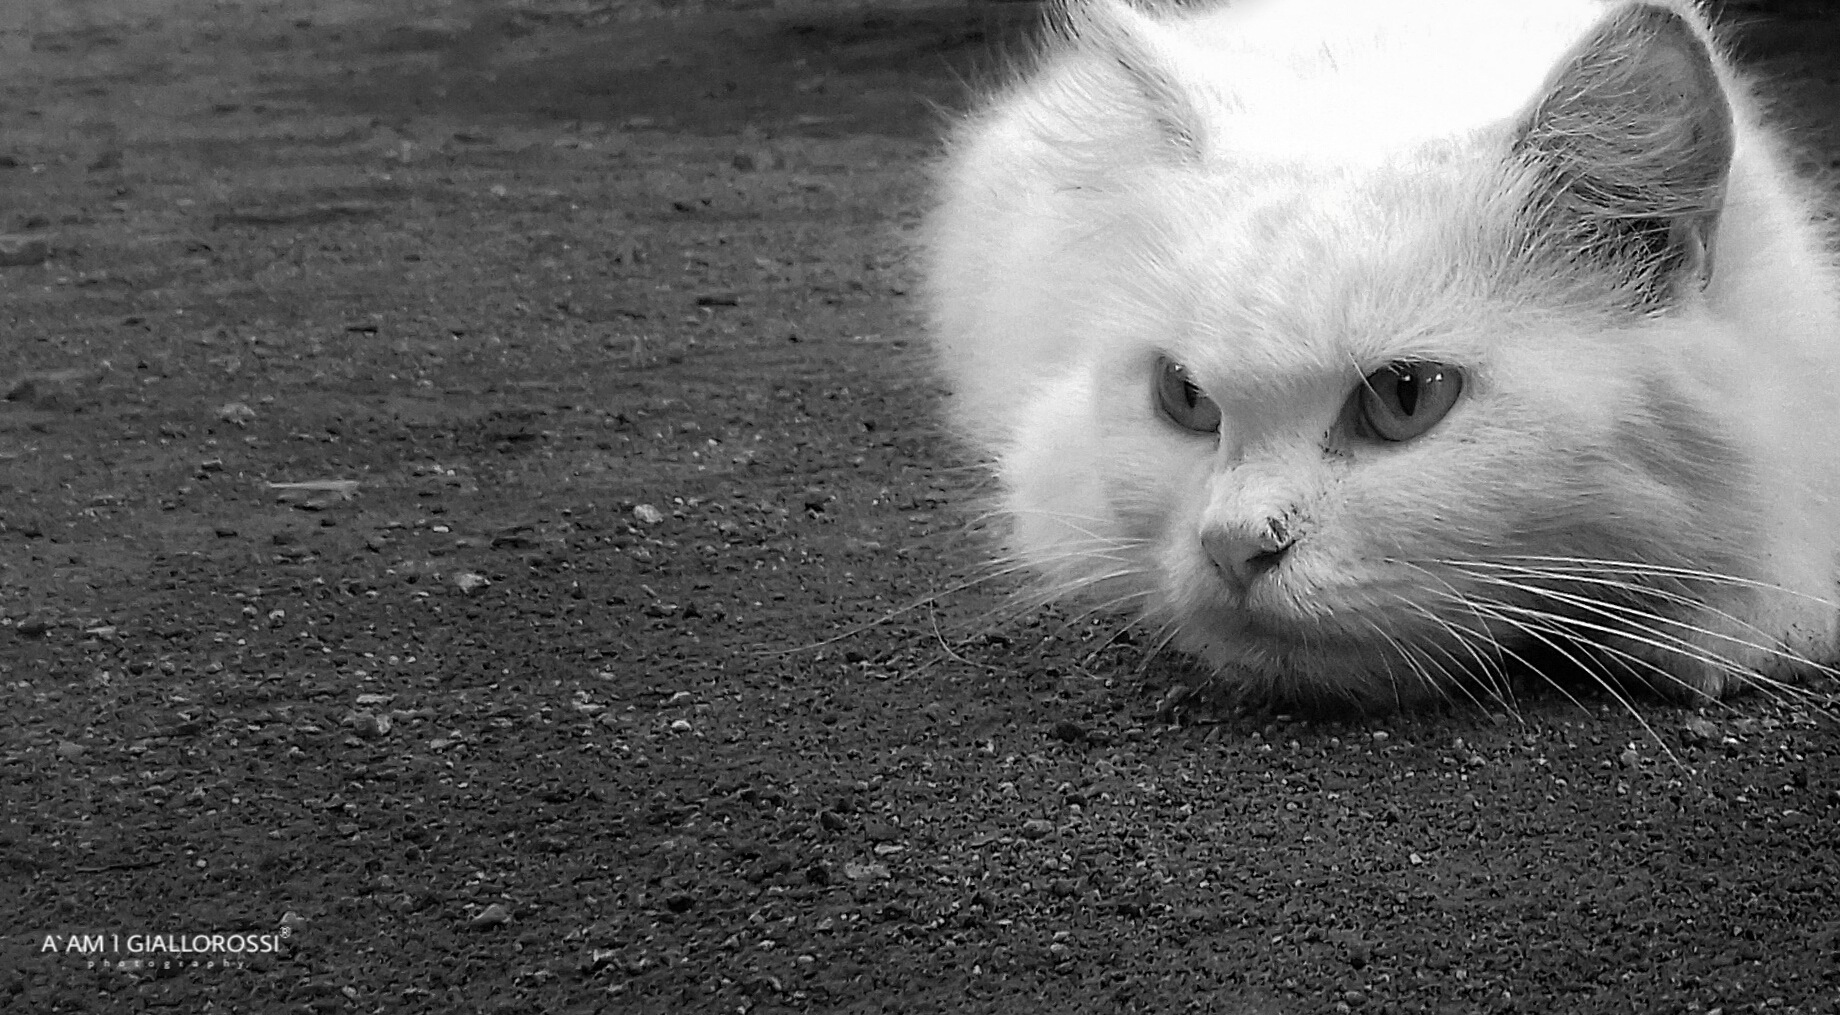 cat by Aam I Giallorossi